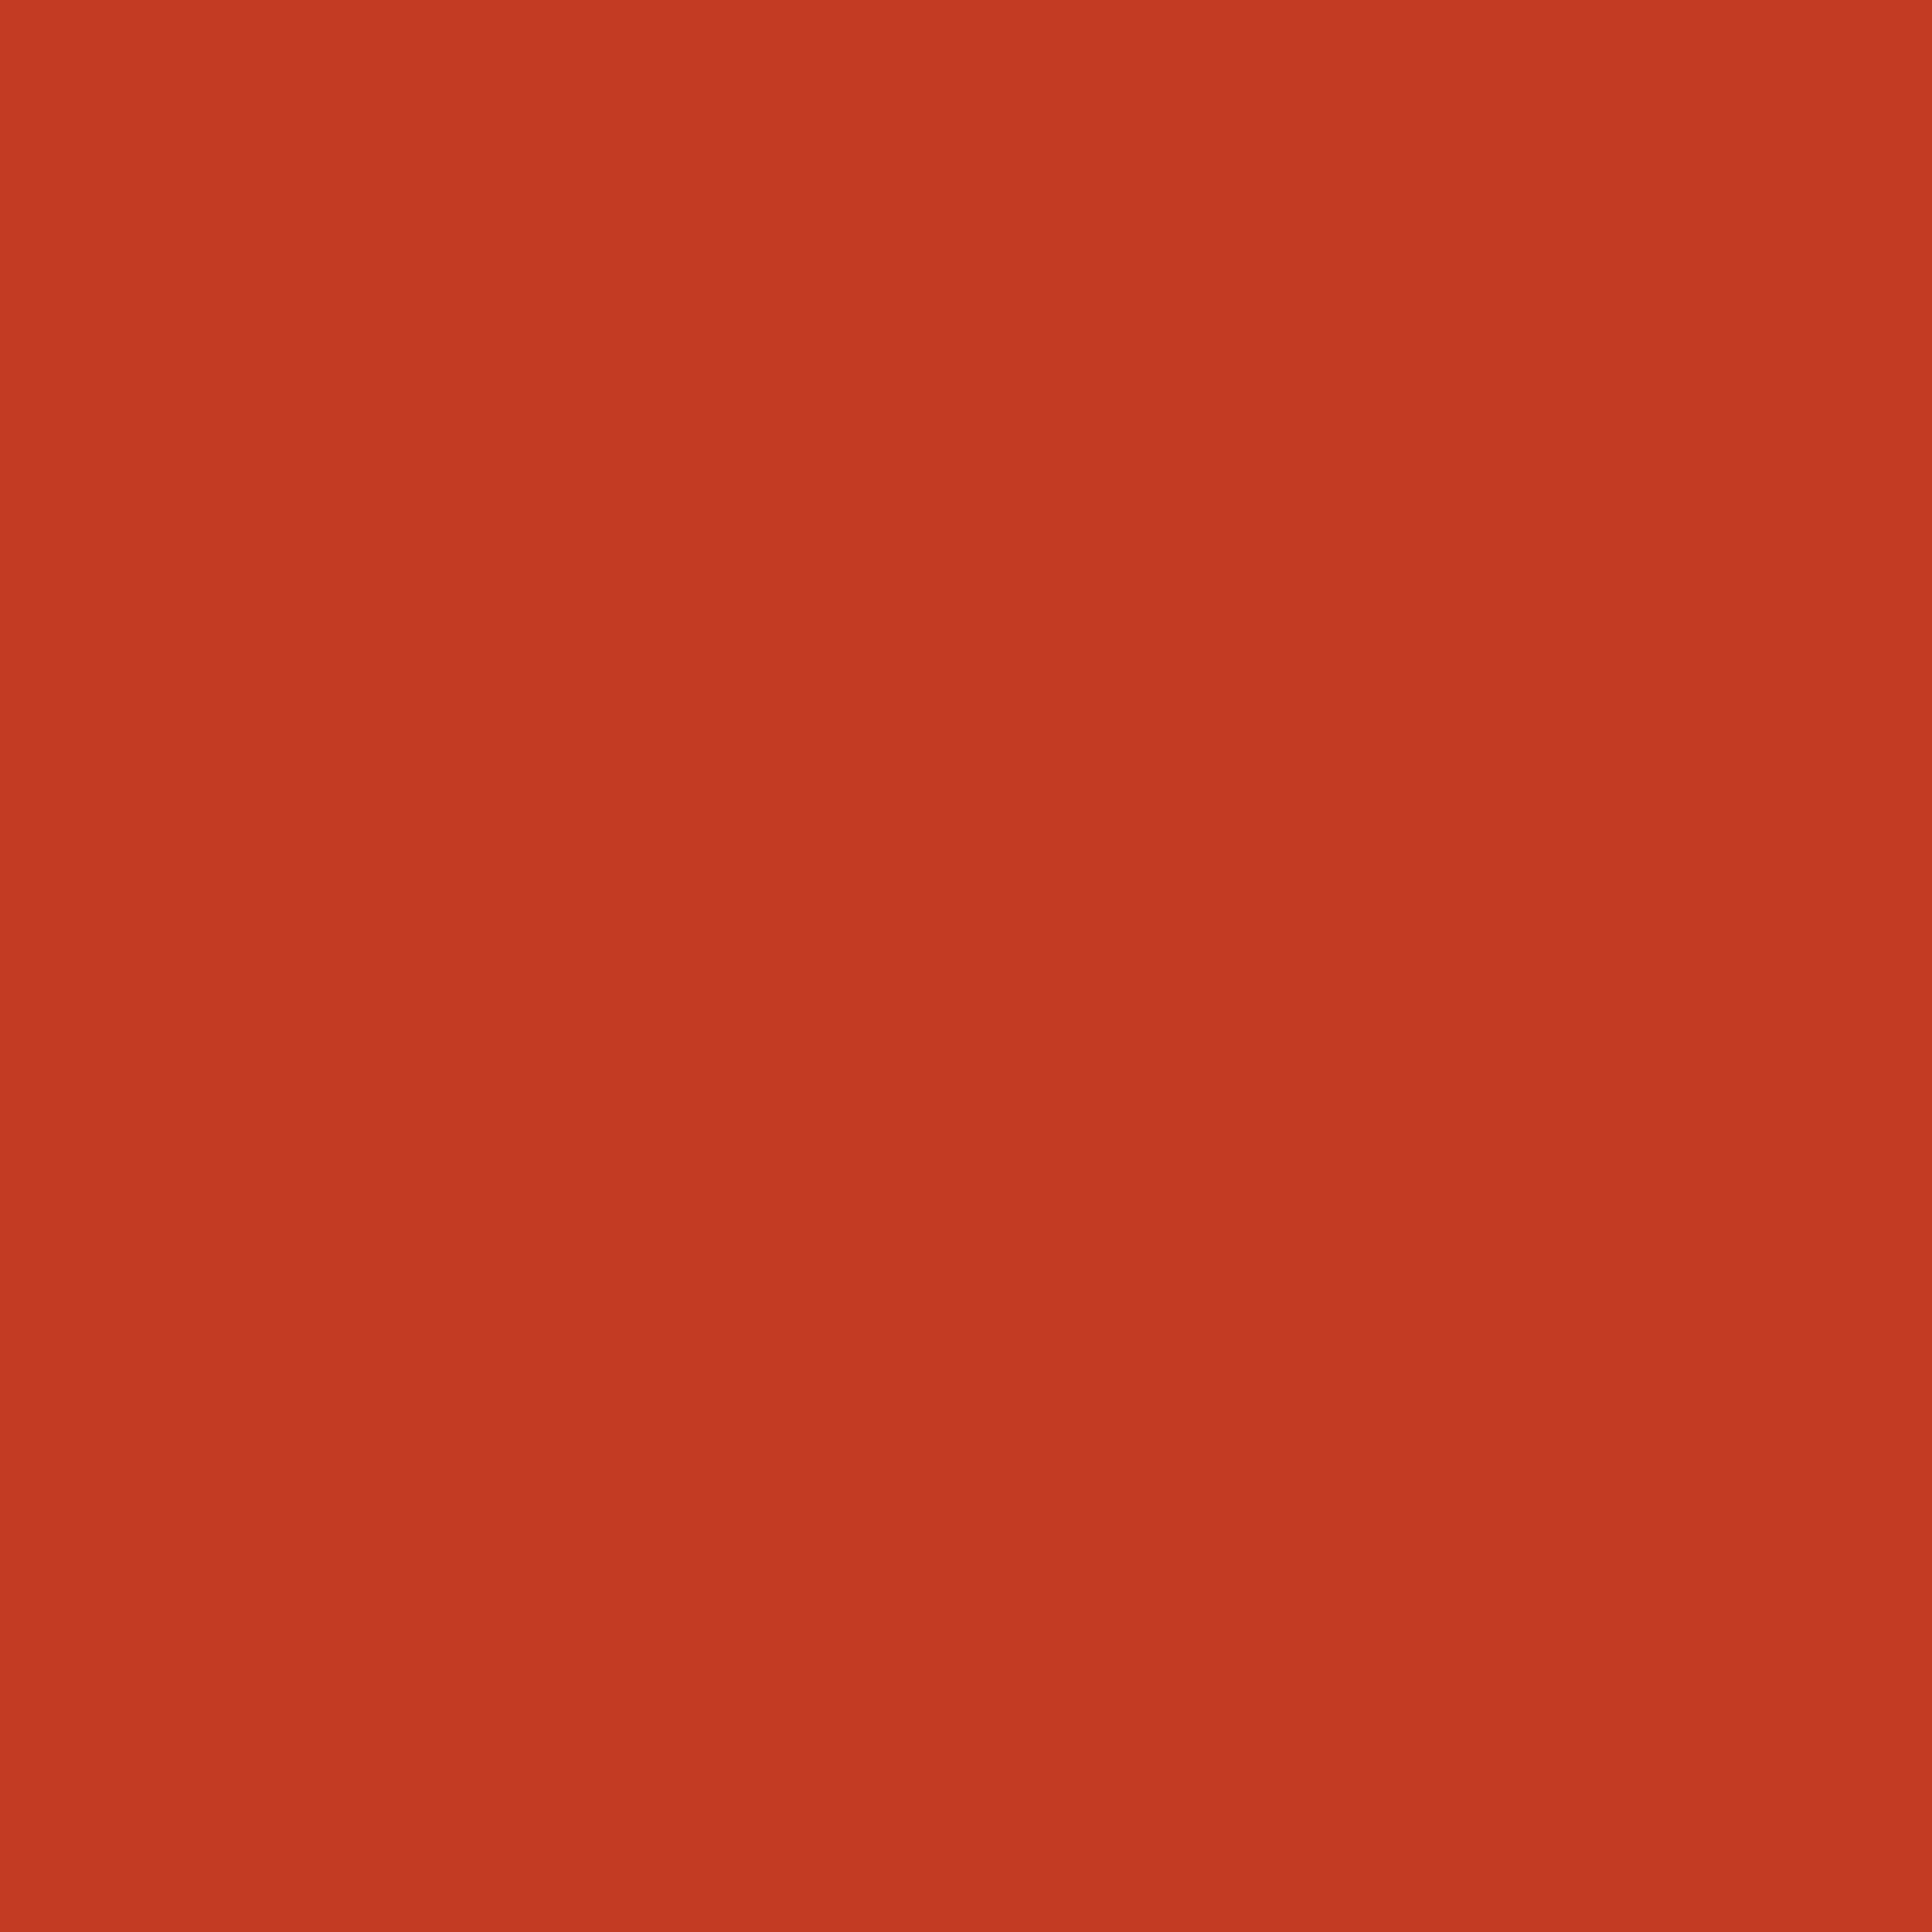 2048x2048 Dark Pastel Red Solid Color Background